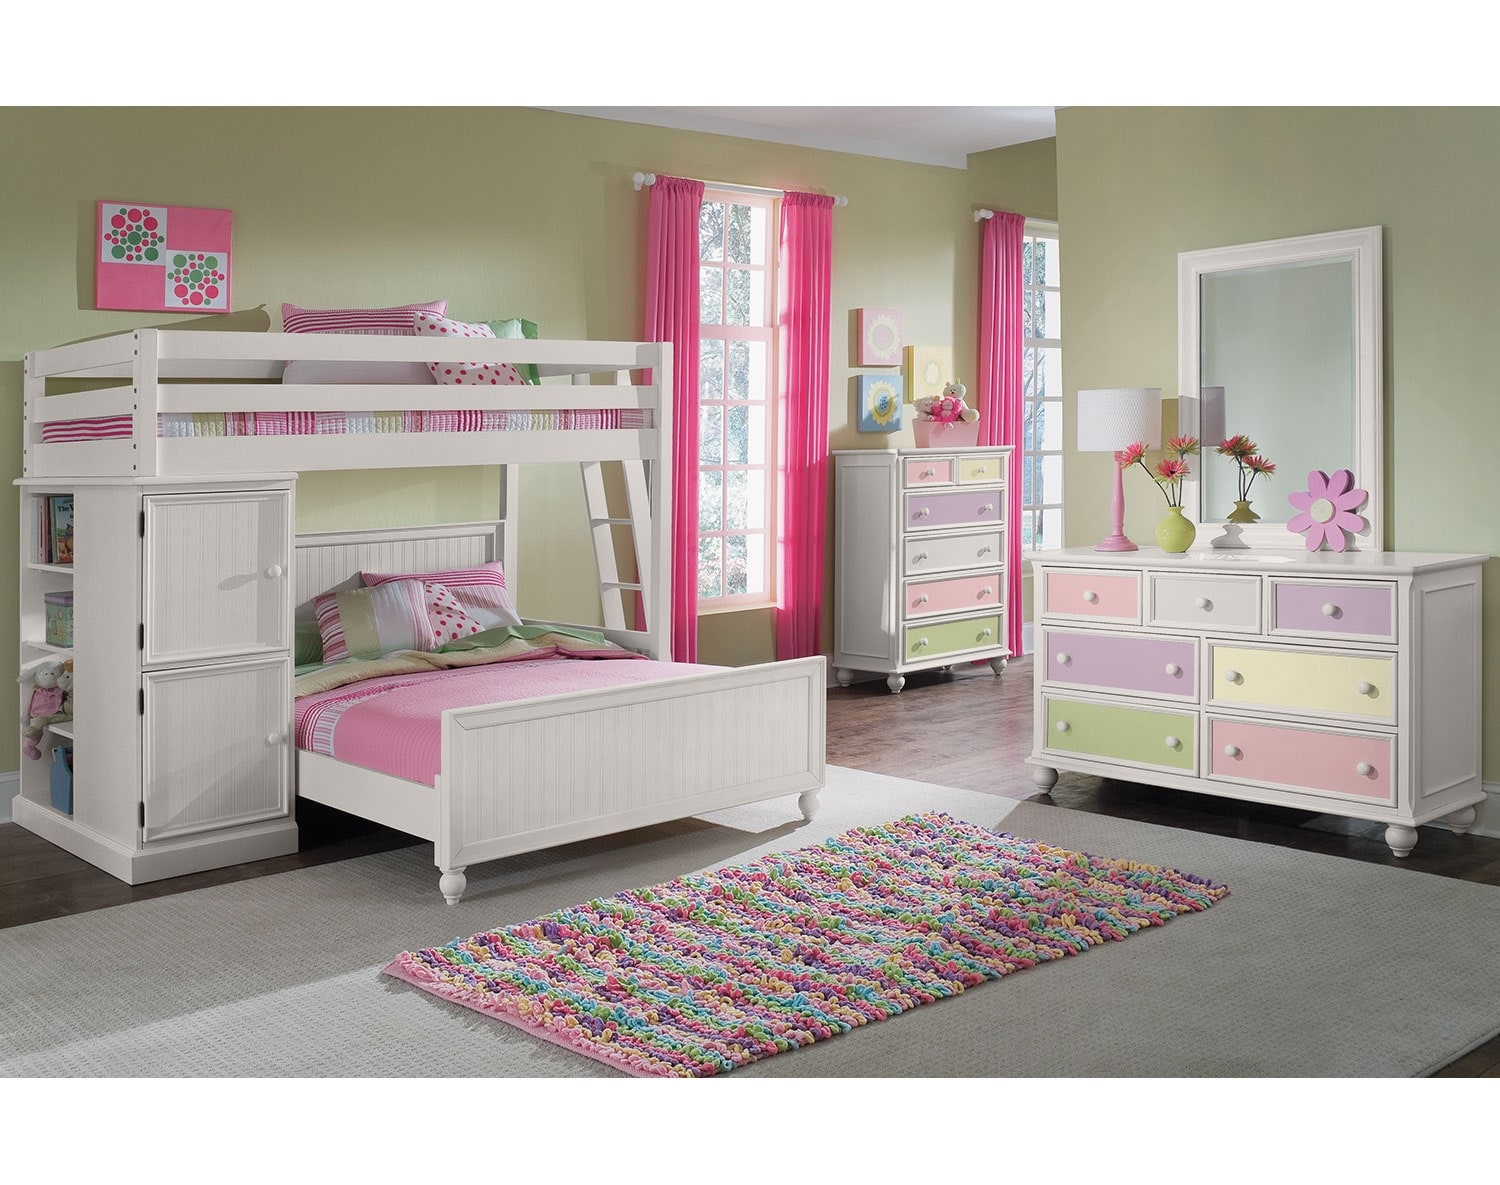 Kids Furniture - The Riley II White Collection - Loft Bed with Full Bed